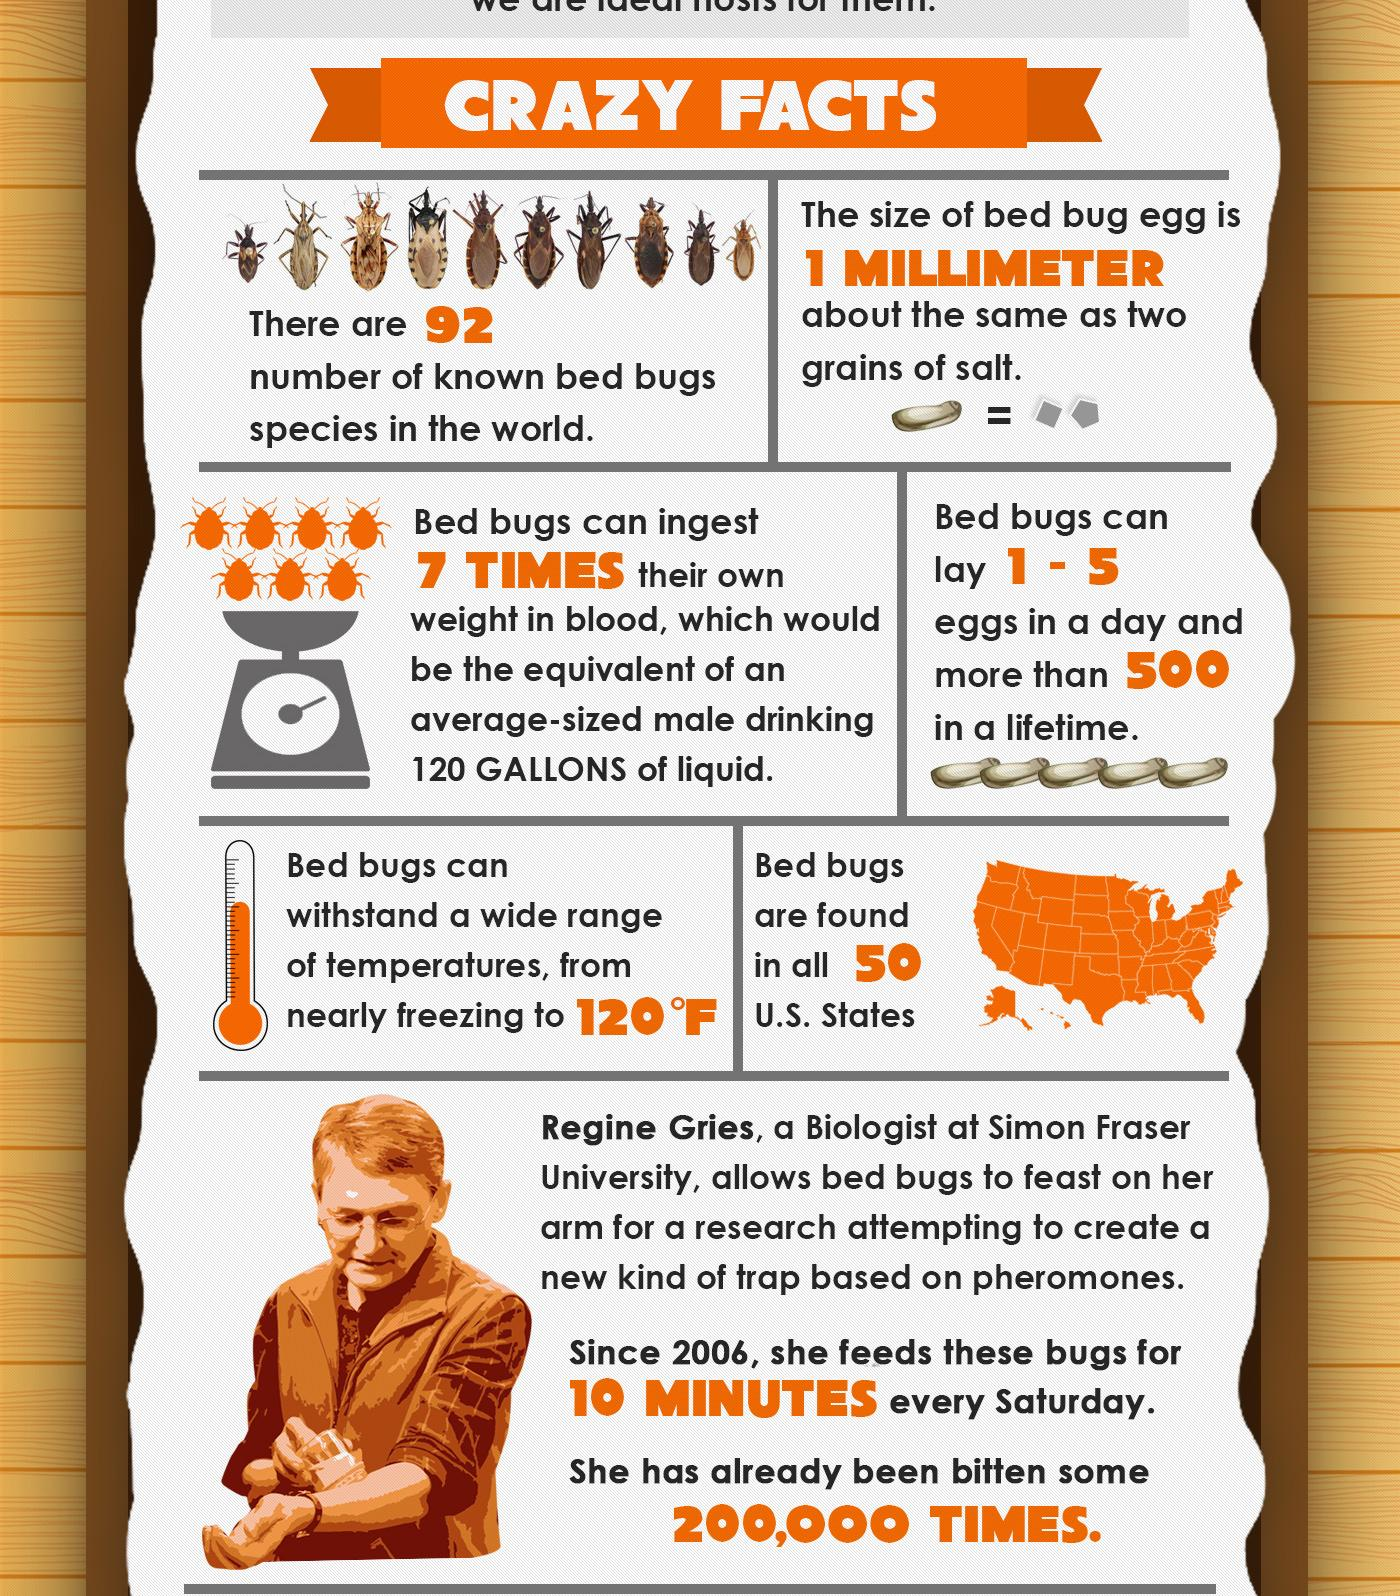 7 Crazy Facts About Bed Bugs - Infographic - Bed Bug Guide